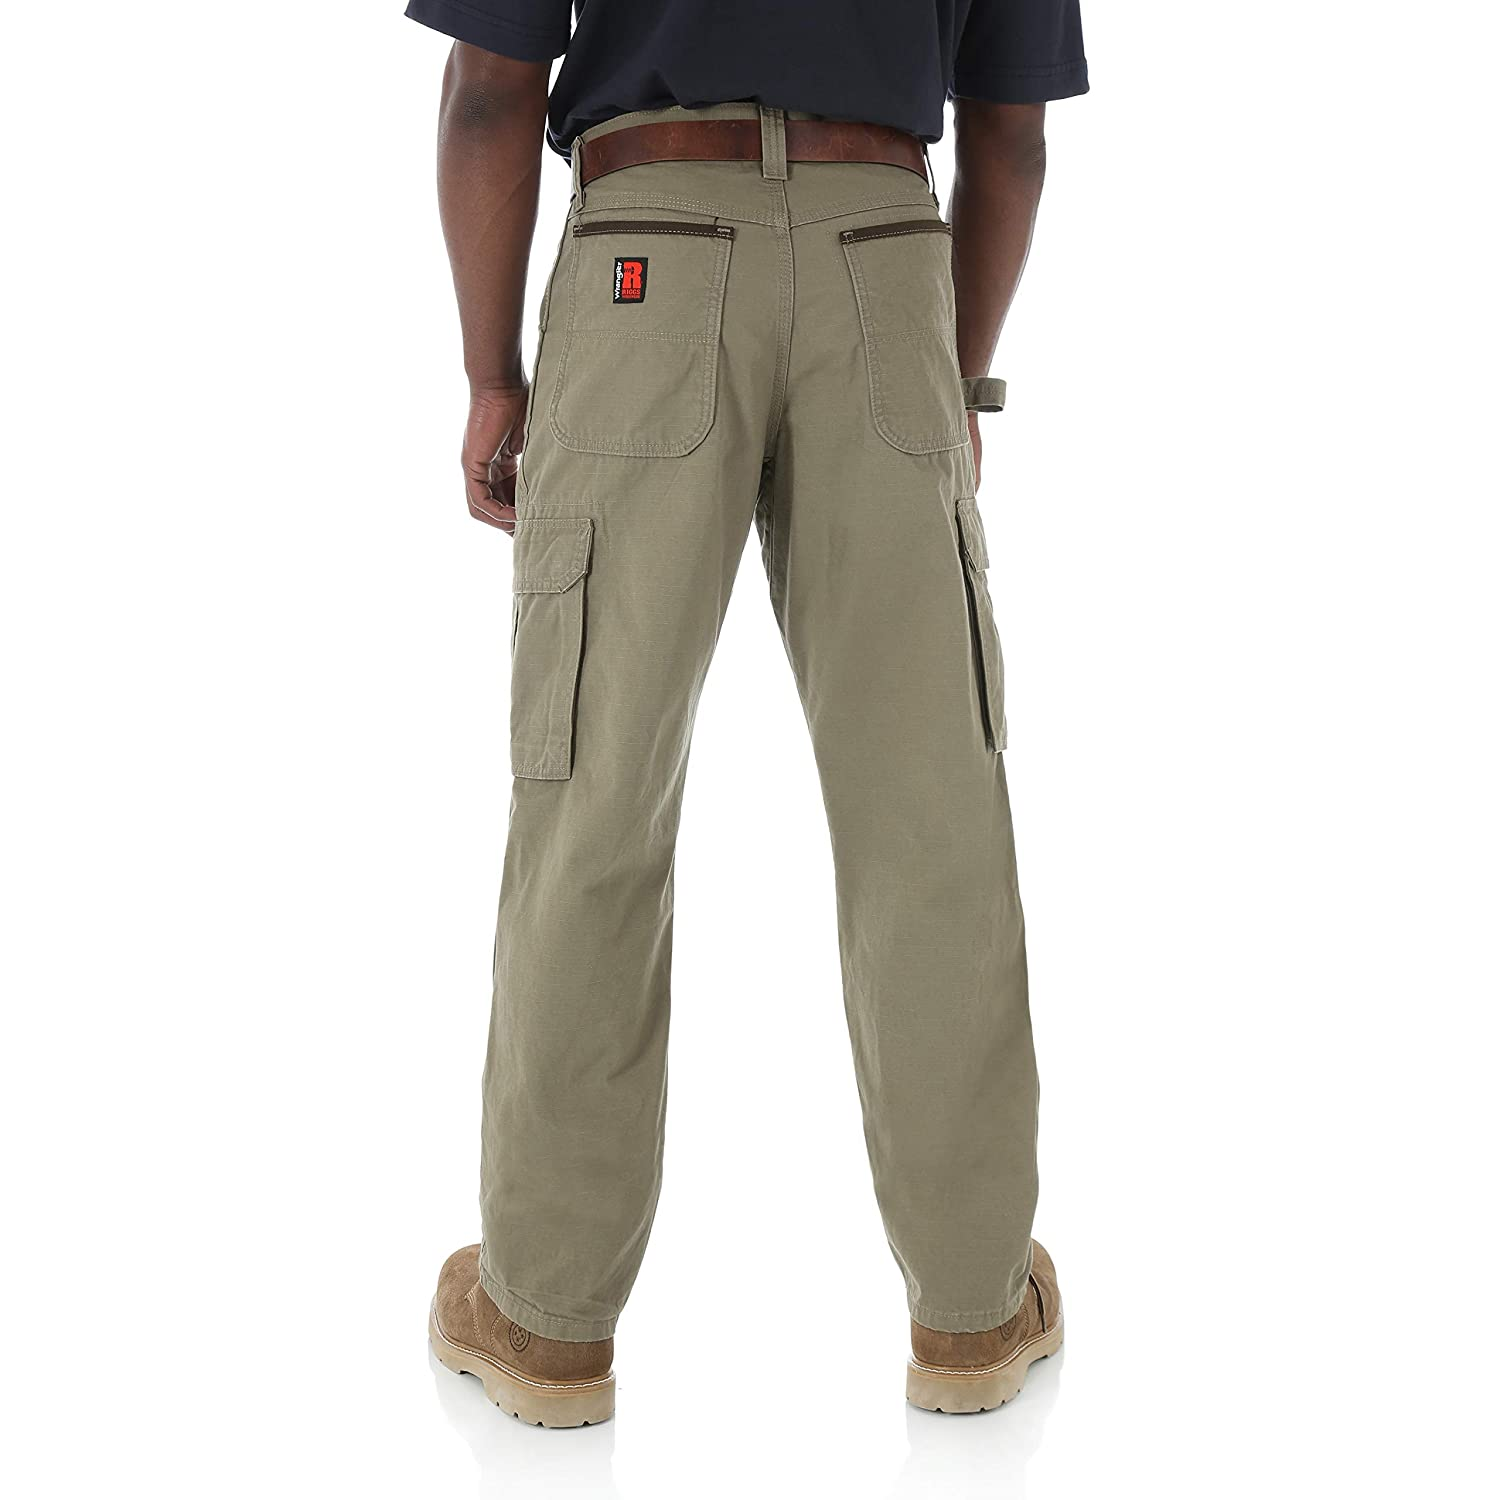 f216cfeac9 Amazon.com: Wrangler RIGGS WORKWEAR Men's Ranger Pant: Casual Pants:  Clothing